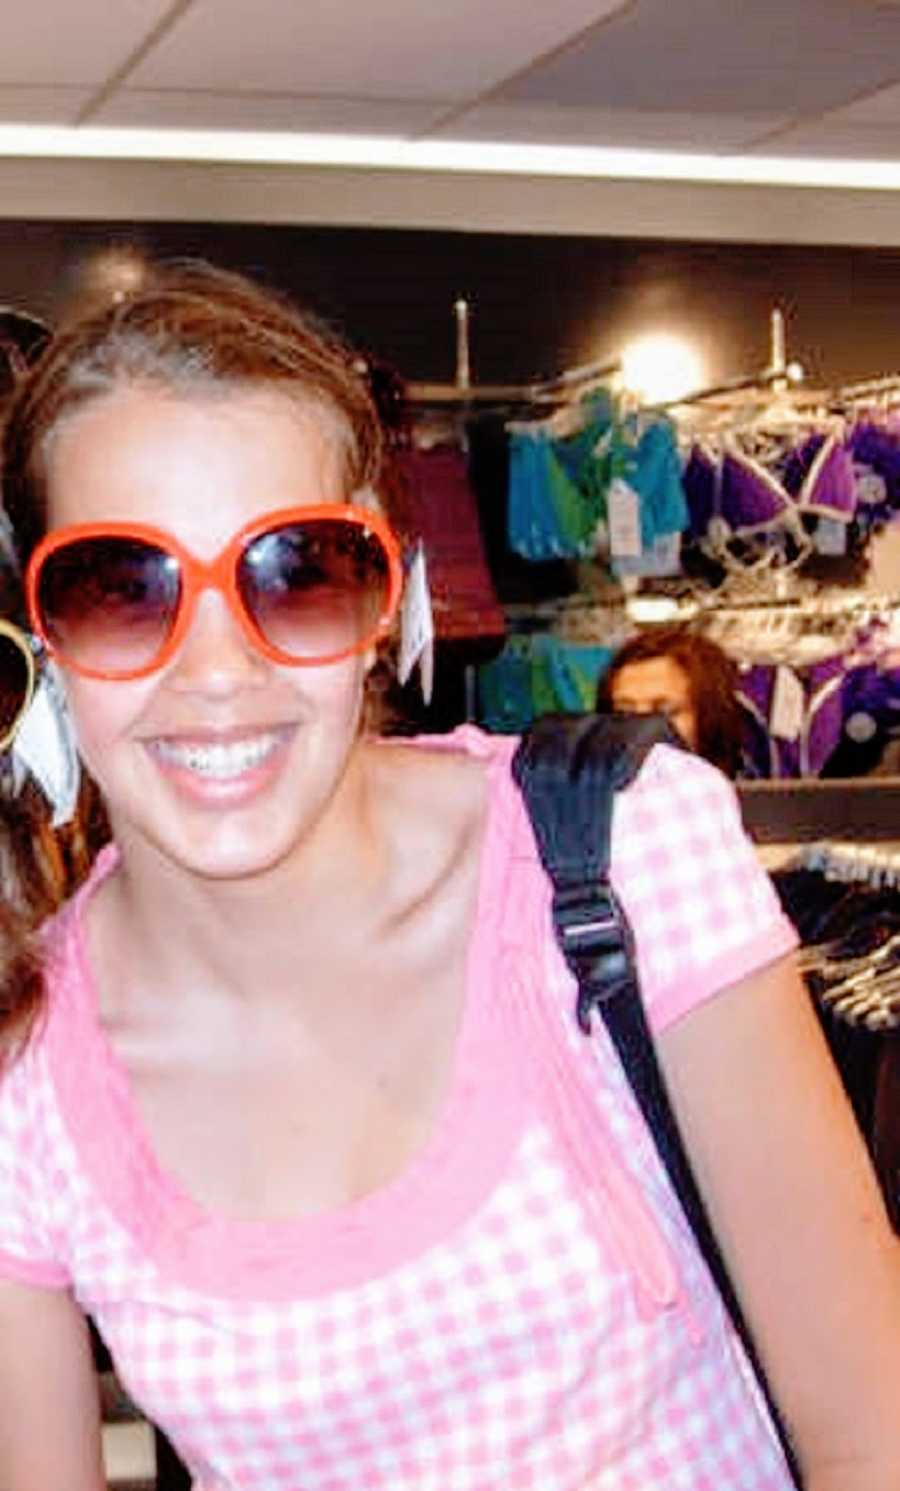 A person wearing a pink shirt and sunglasses